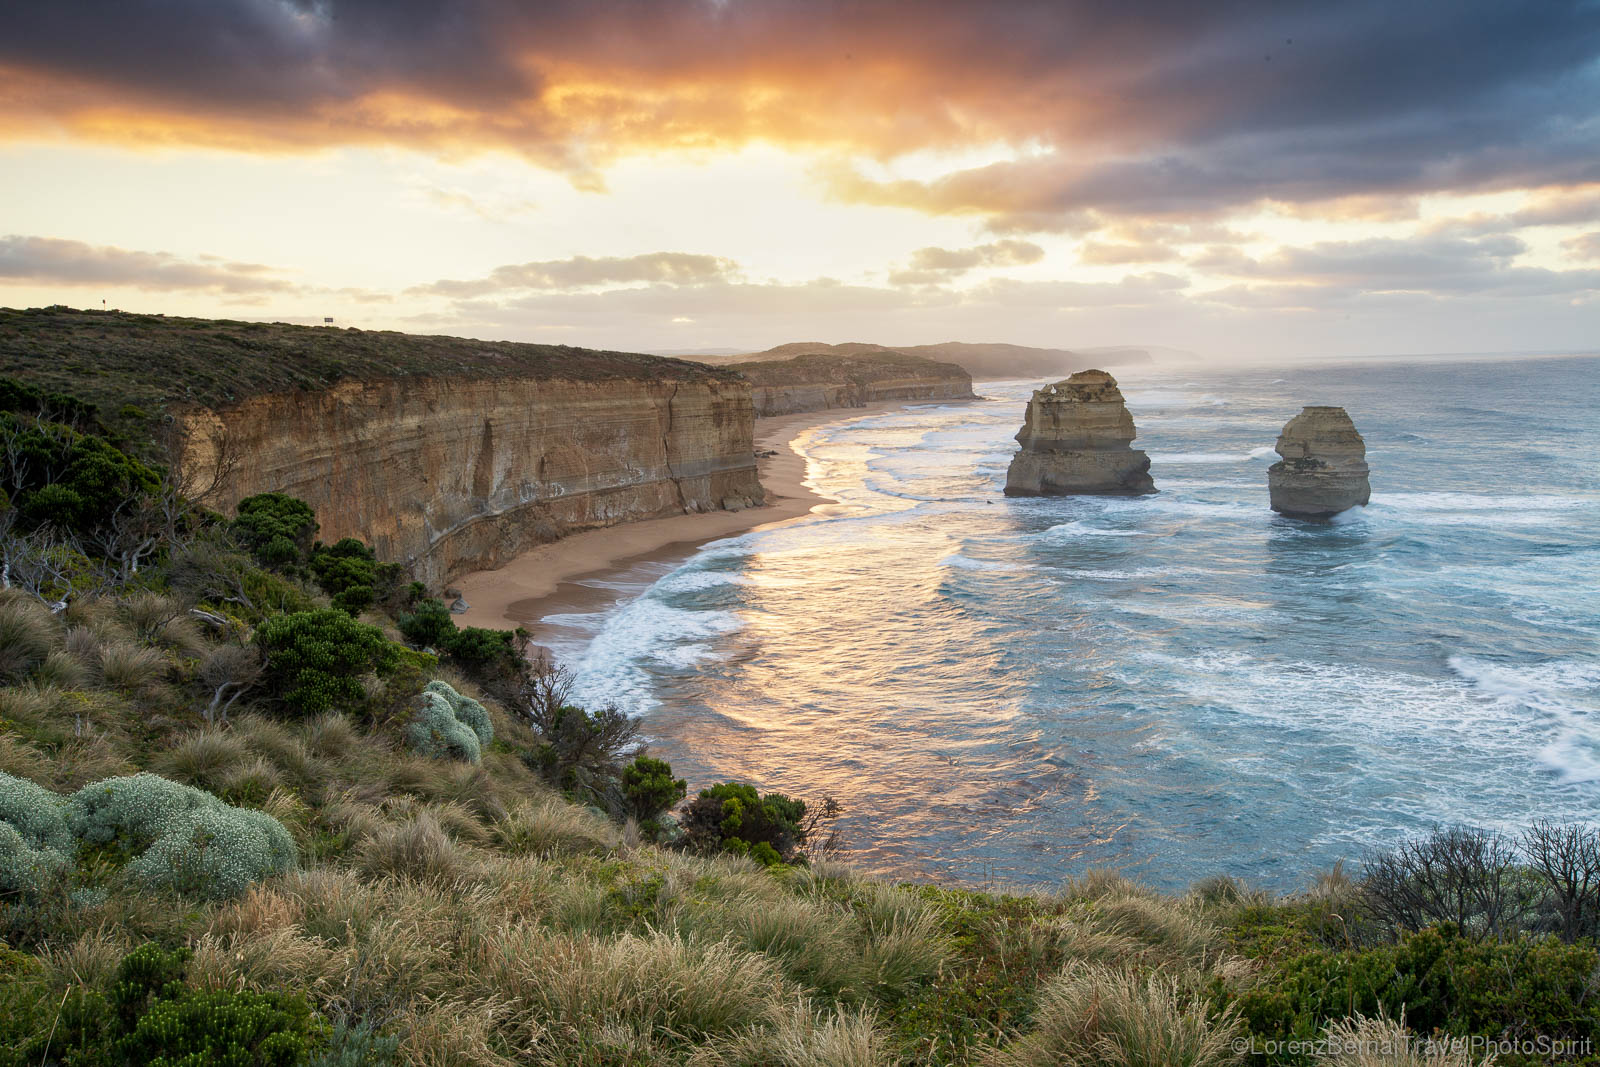 View from the top of the cliffs on the Great Ocean Road, New South Wales